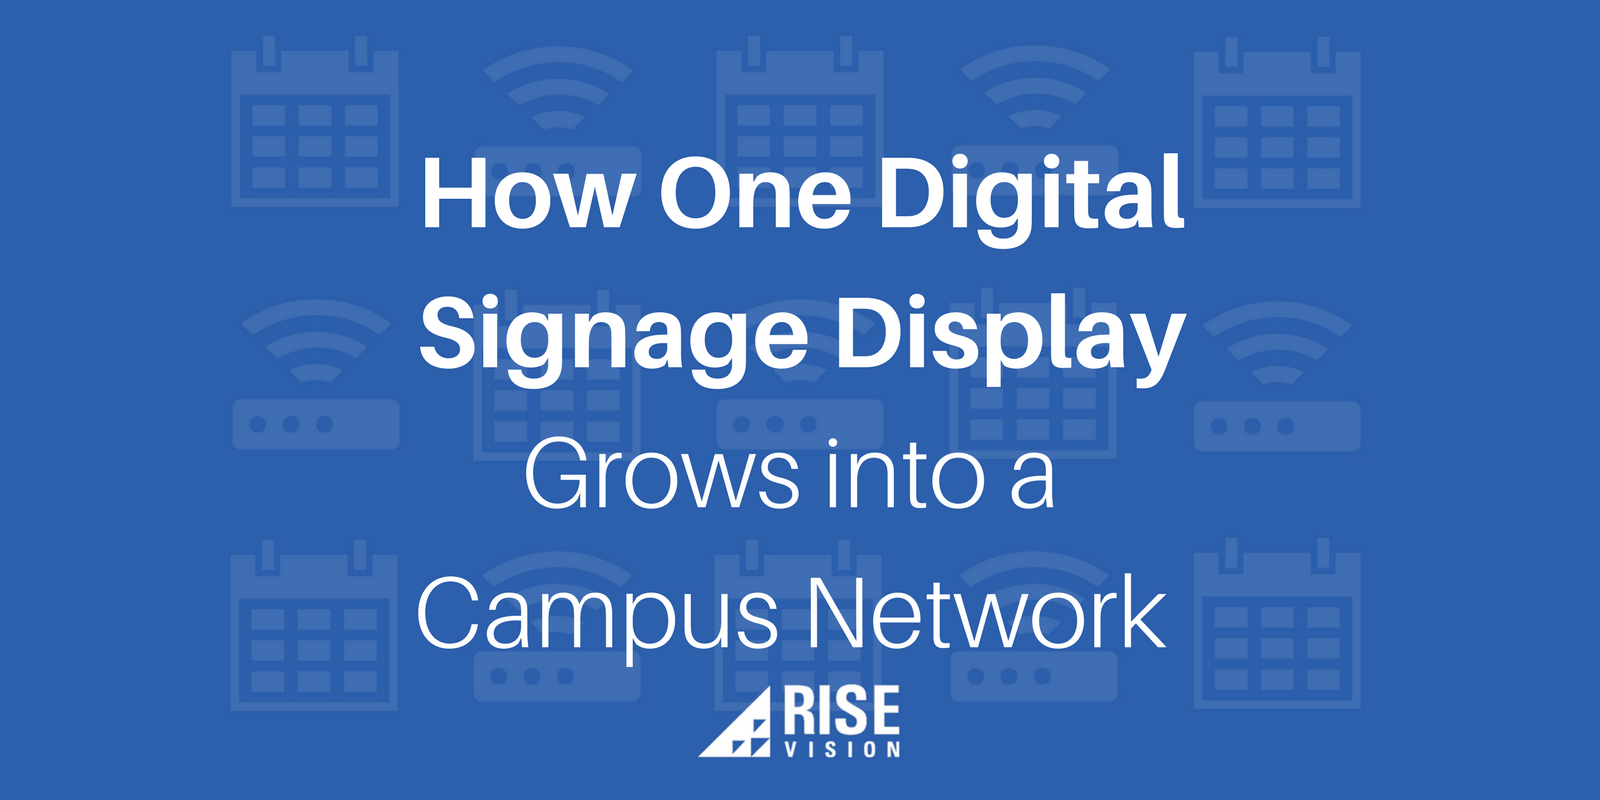 Rise Vision Digital Signage Campus College University Network